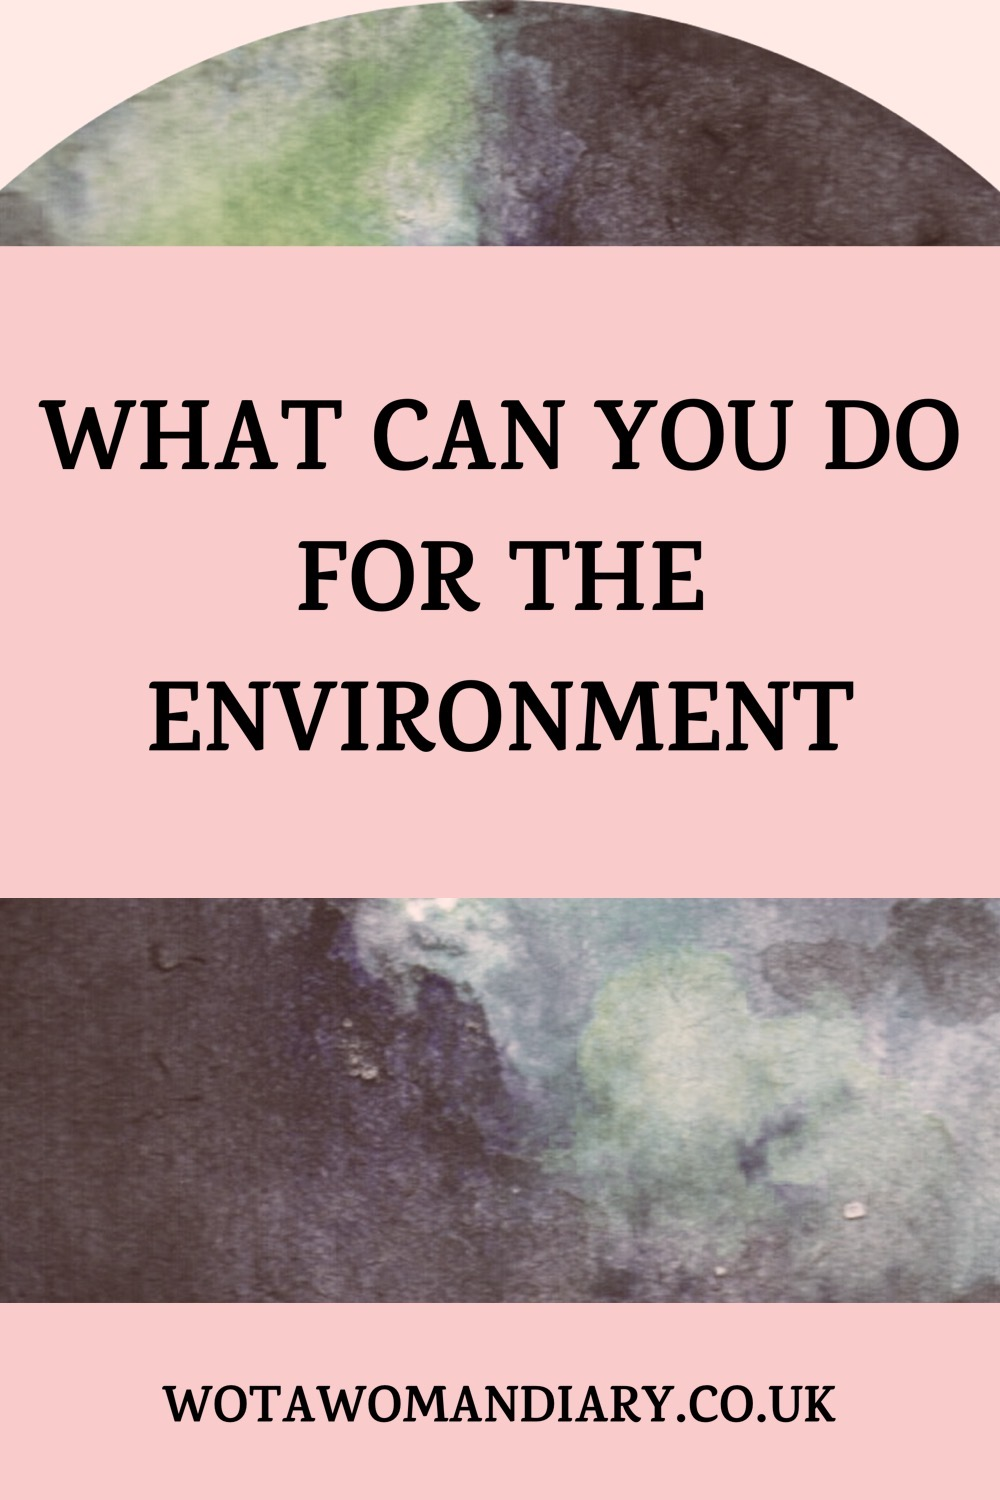 bold text reading what can you do for the environment with a gray picture of planet earth in the back ground